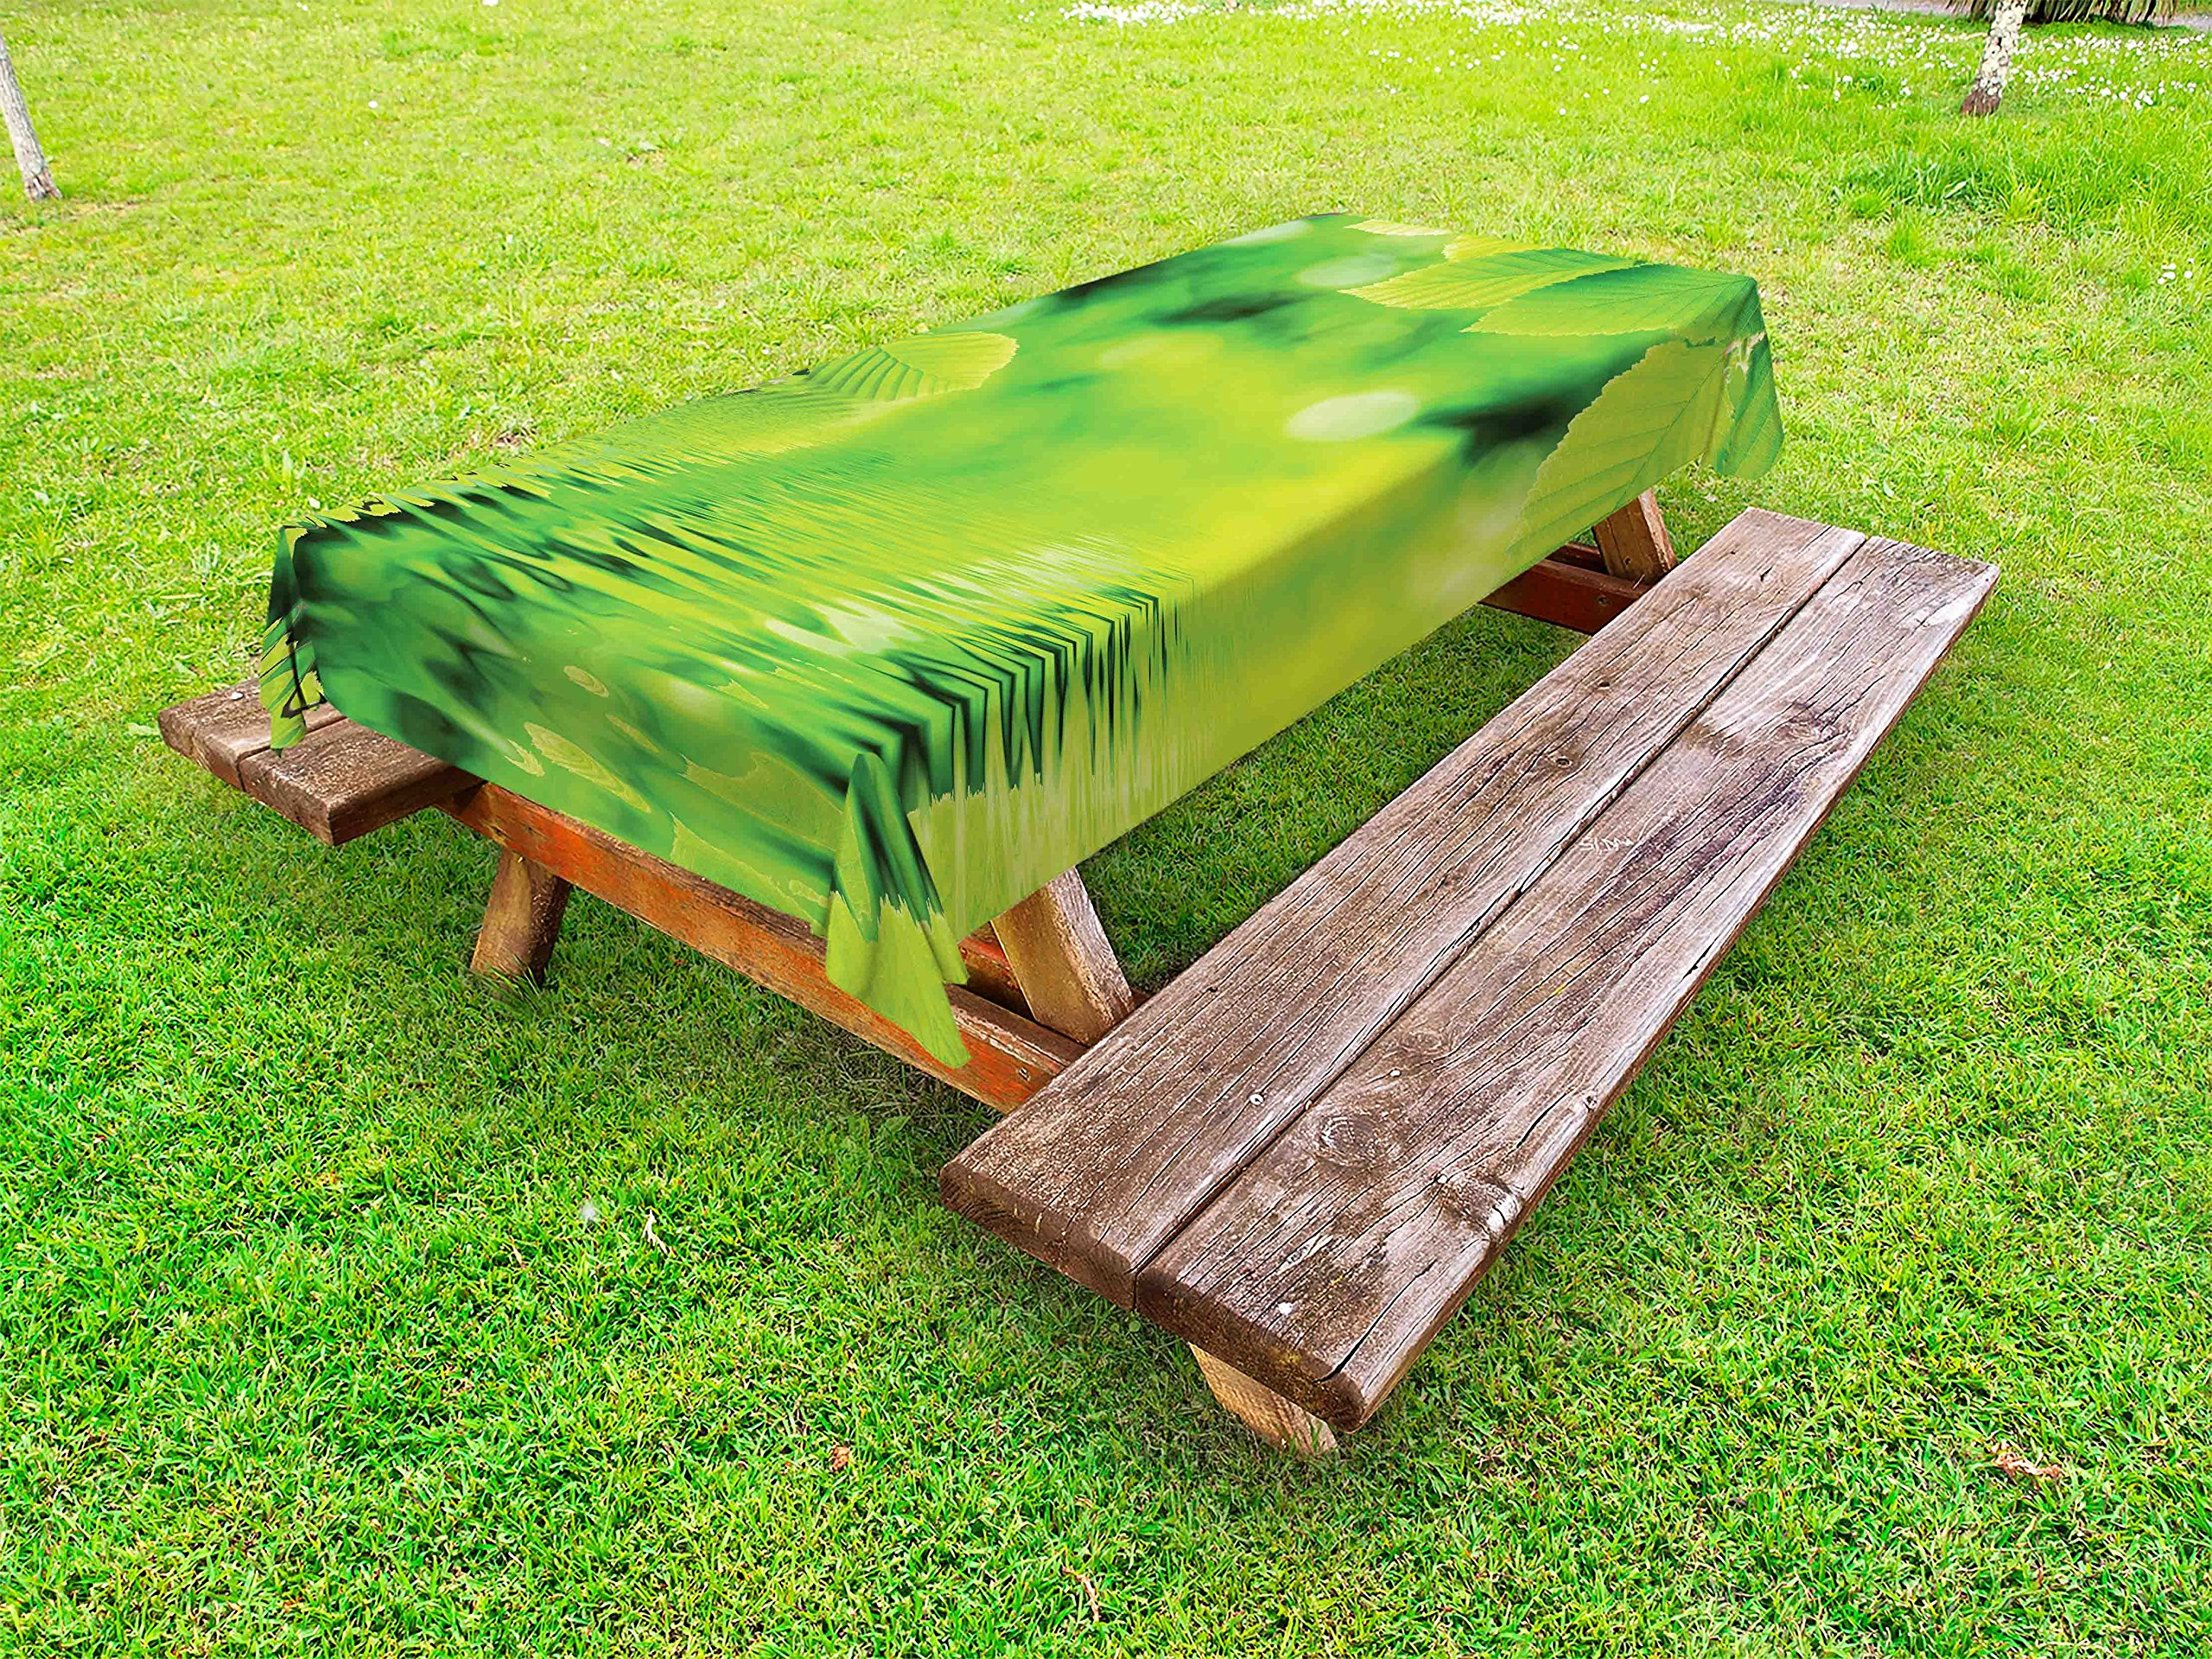 Ambesonne Leaves Outdoor Tablecloth, Leaves in Water Spa Open Your Chakra with Nature Meditation Ecological Monochrome Photo, Decorative Washable Picnic Table Cloth, 58 X 104 inches, Green